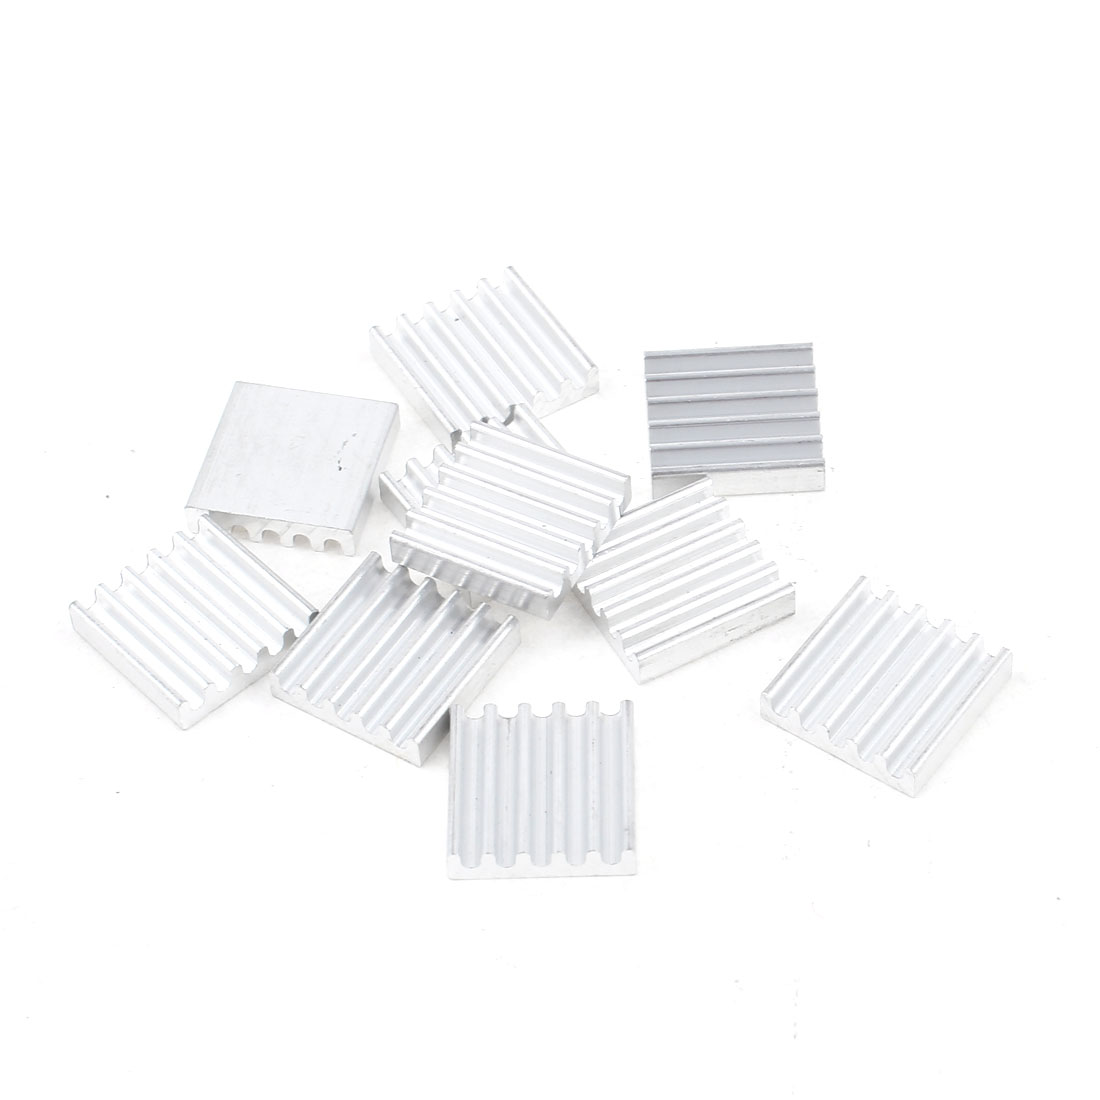 10 Pcs Silver Tone Aluminum Radiator Heat Sink Heatsink 13mm x 13mm x 3mm